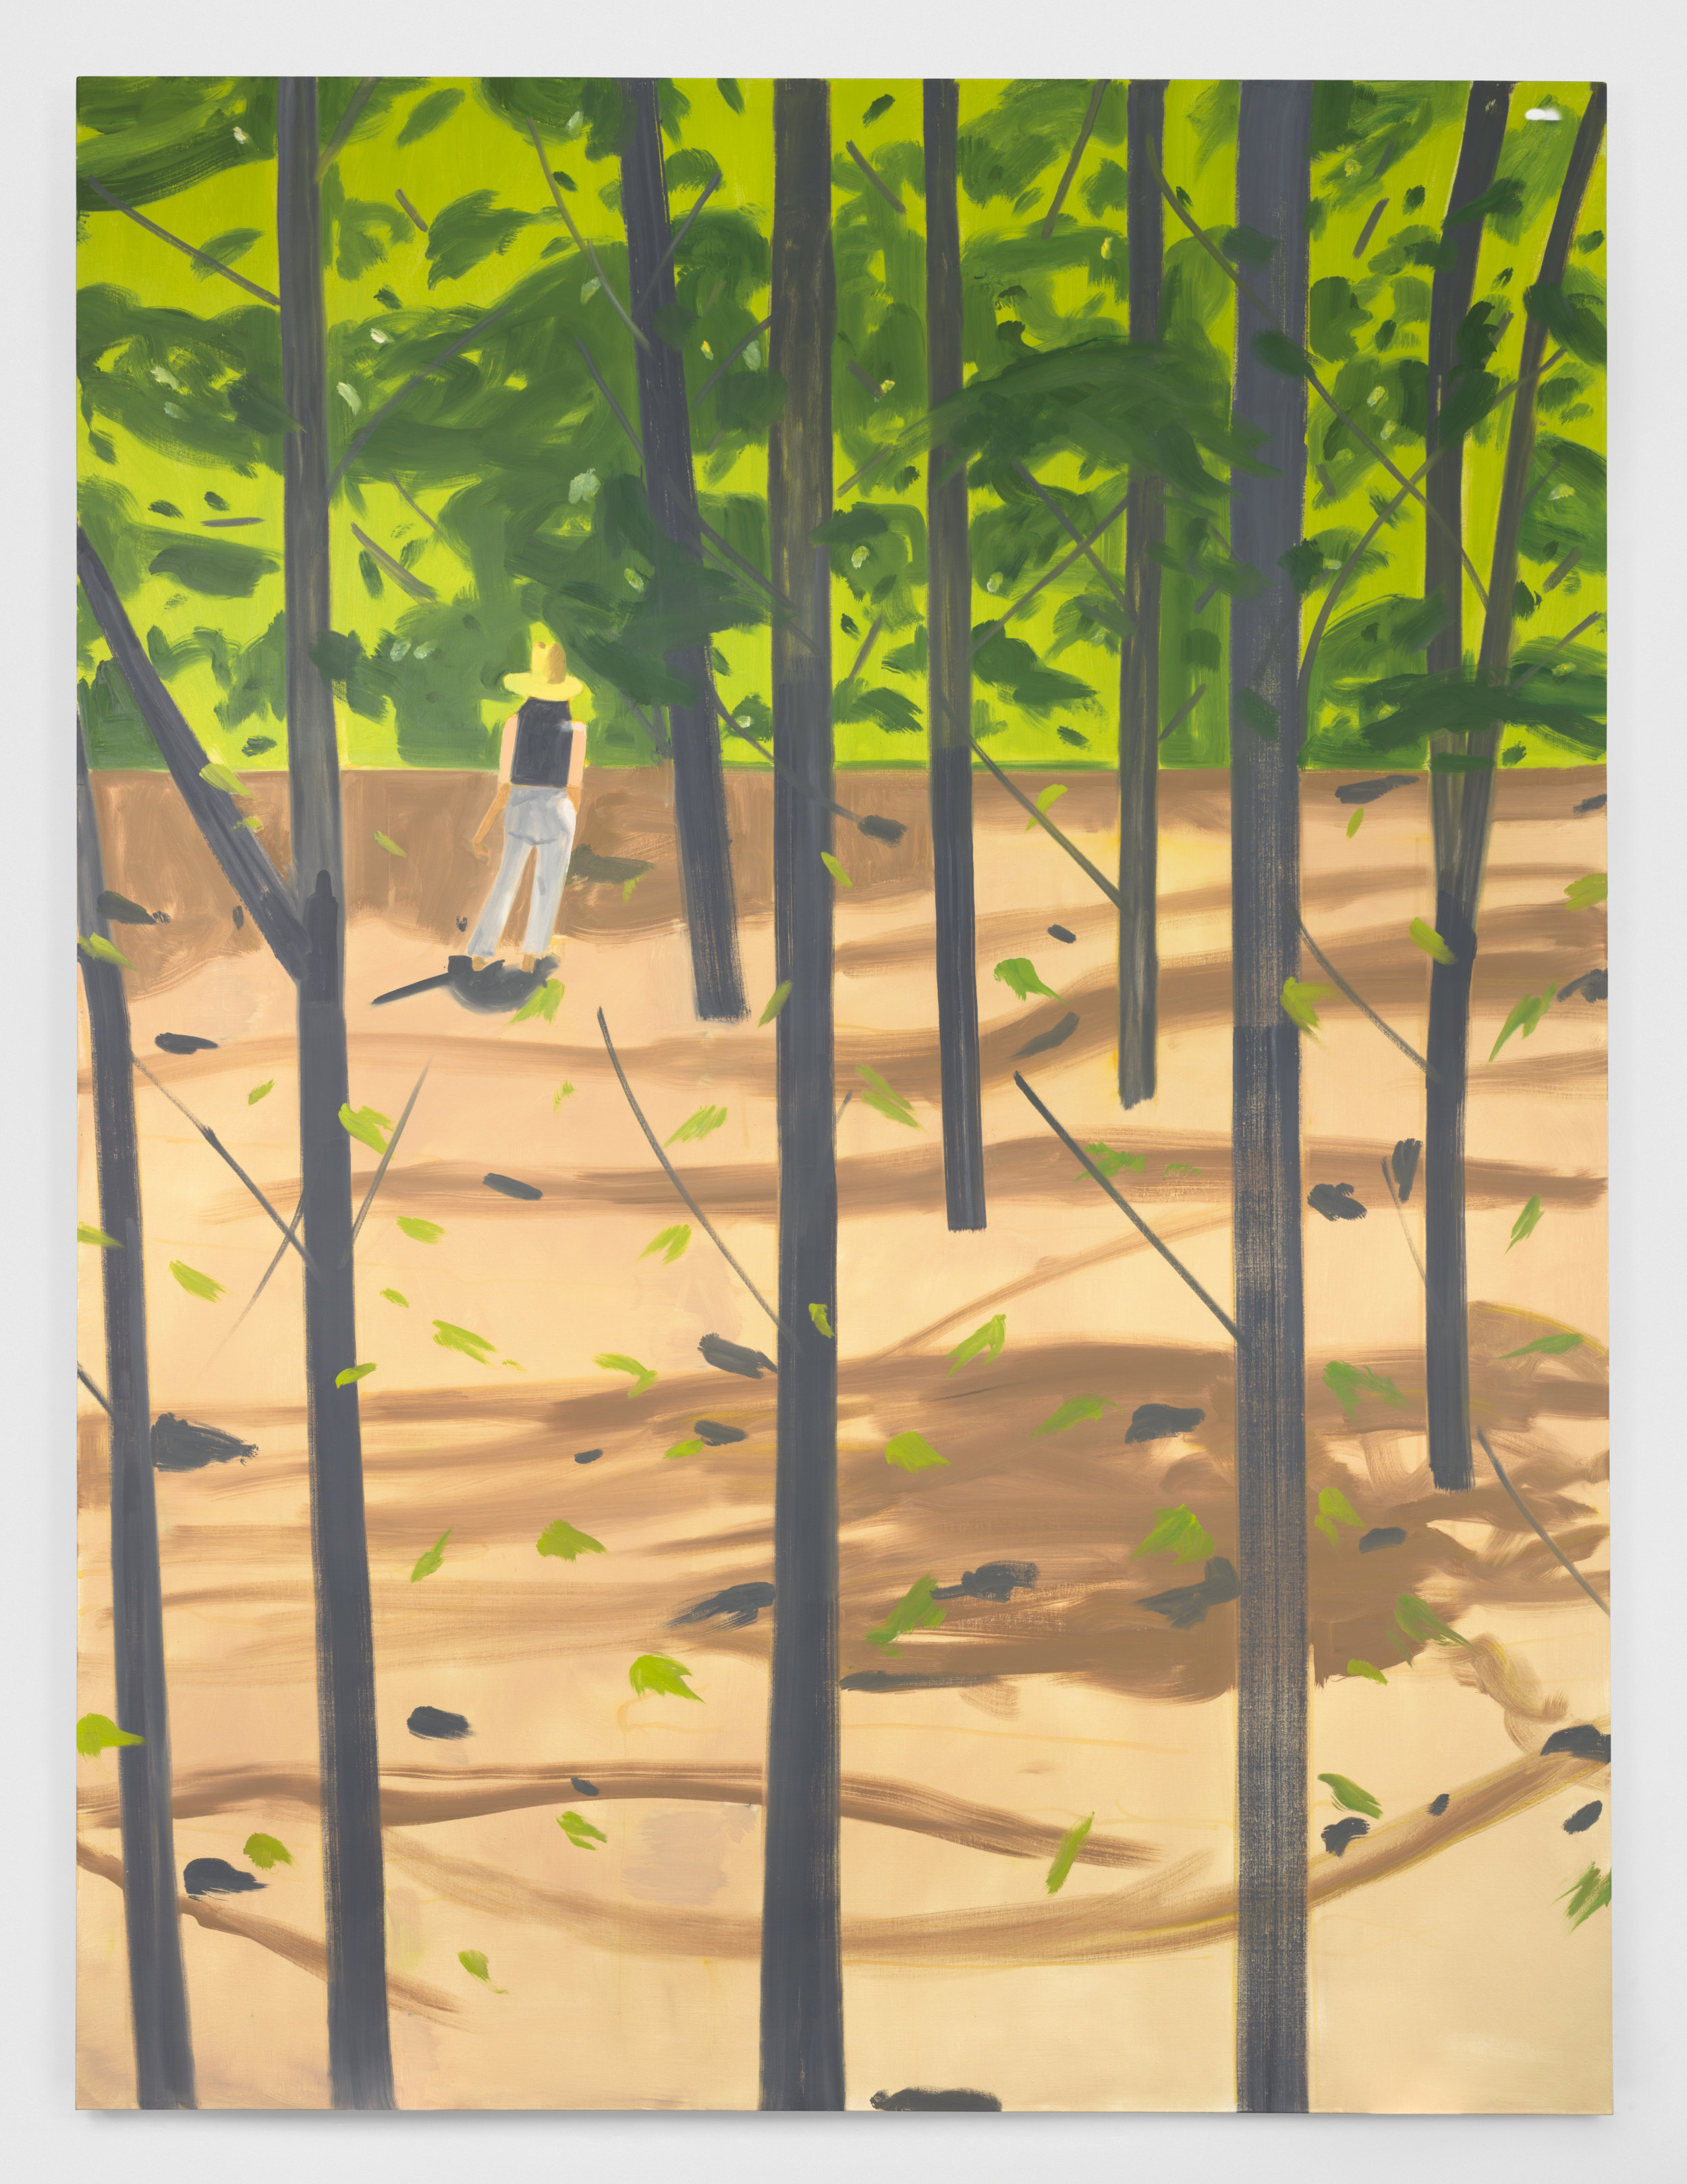 Alex Katz  Figure in the Woods   , 2016  Oil on canvas 365.8 x 264.2 cm © Alex Katz / Adagp, Paris, 2019 Picture: Courtesy Gavin Brown Enterprise New York